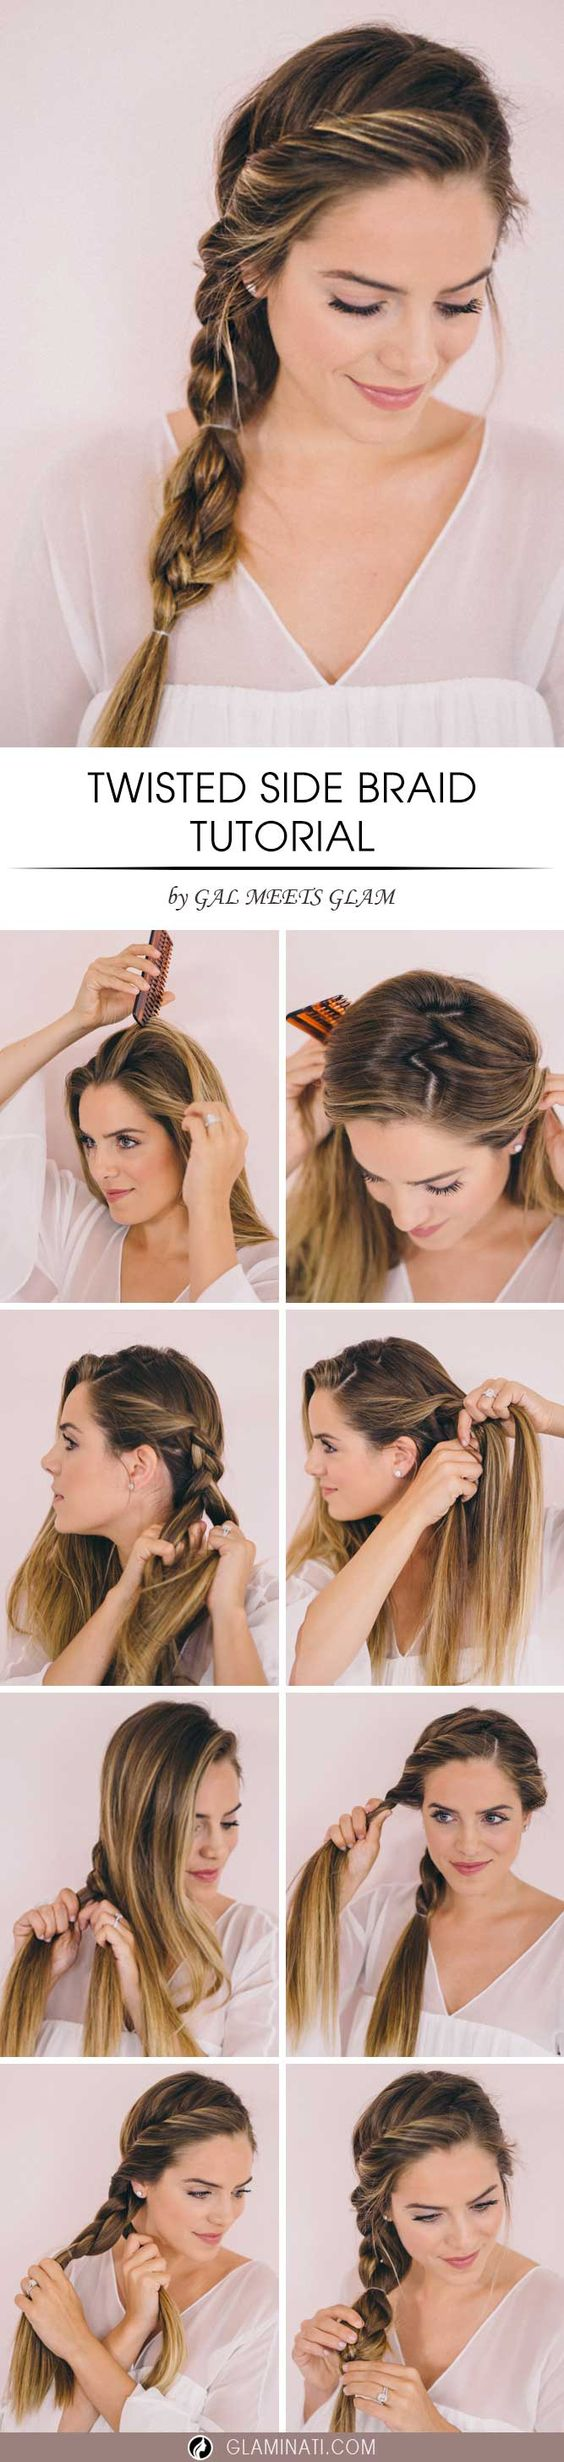 A side braid is trendy right now. It is perfect for everyday wear and some fancy parties. A twisted braid looks terrific with evening gowns and it is more creative than a regular updo.: